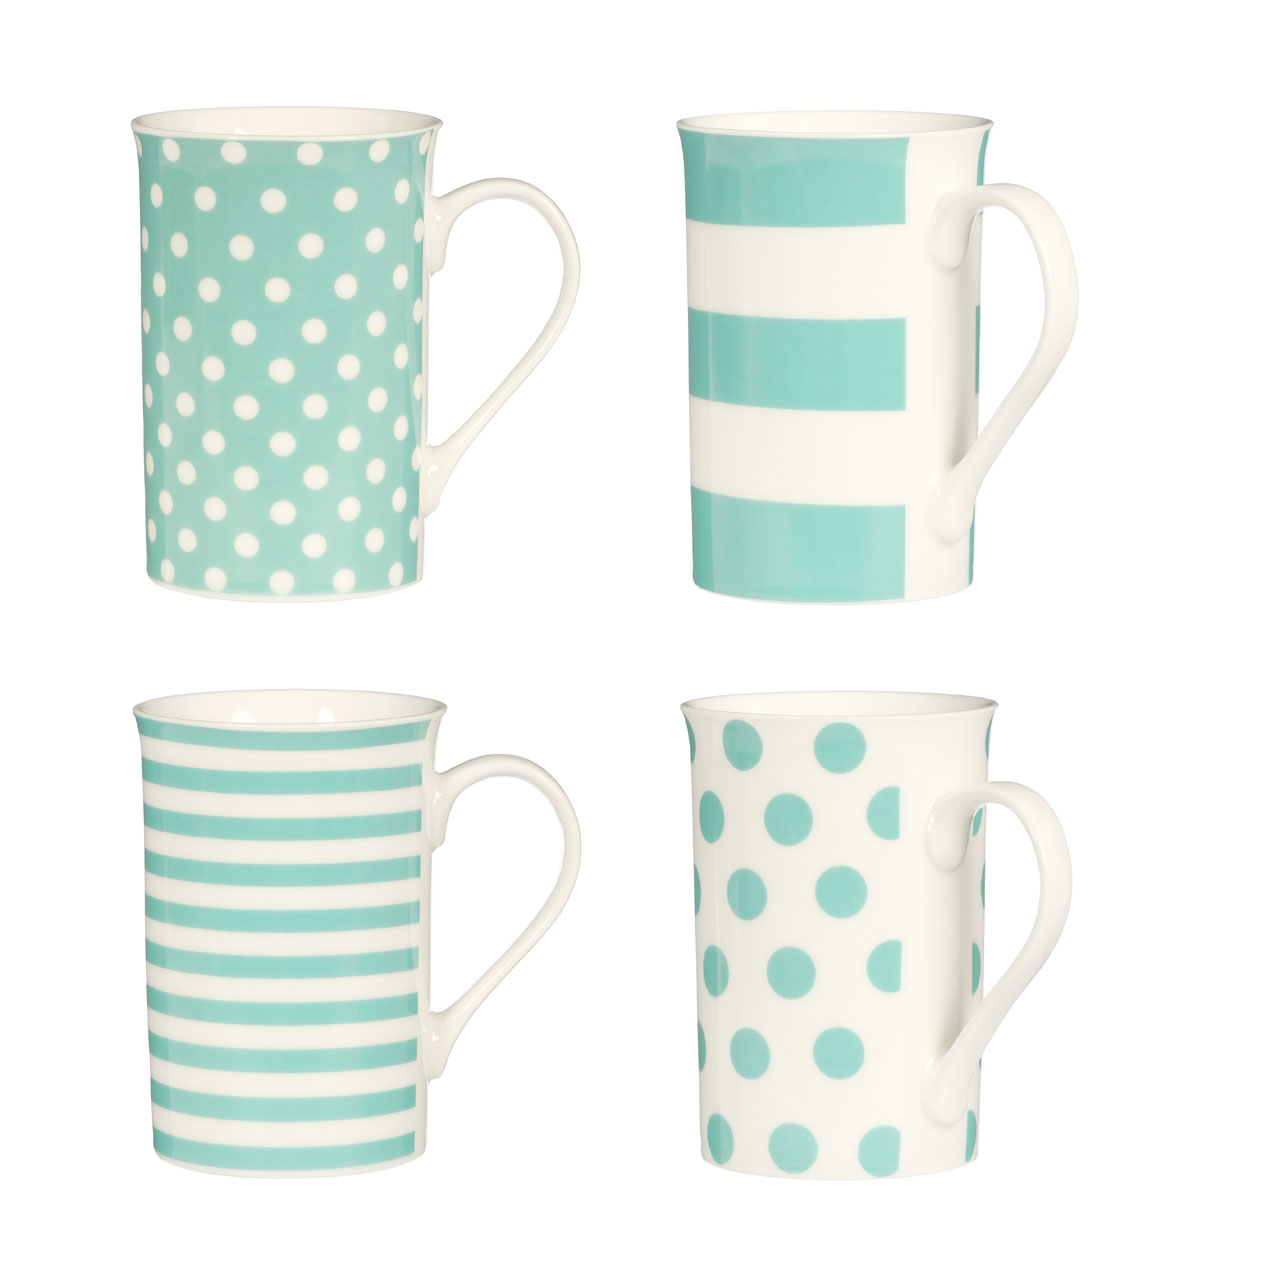 the office mugs. Set Of 4 Coffee Mugs White Turquoise Spots Stripes Porcelain Home Office Tea Cup The I